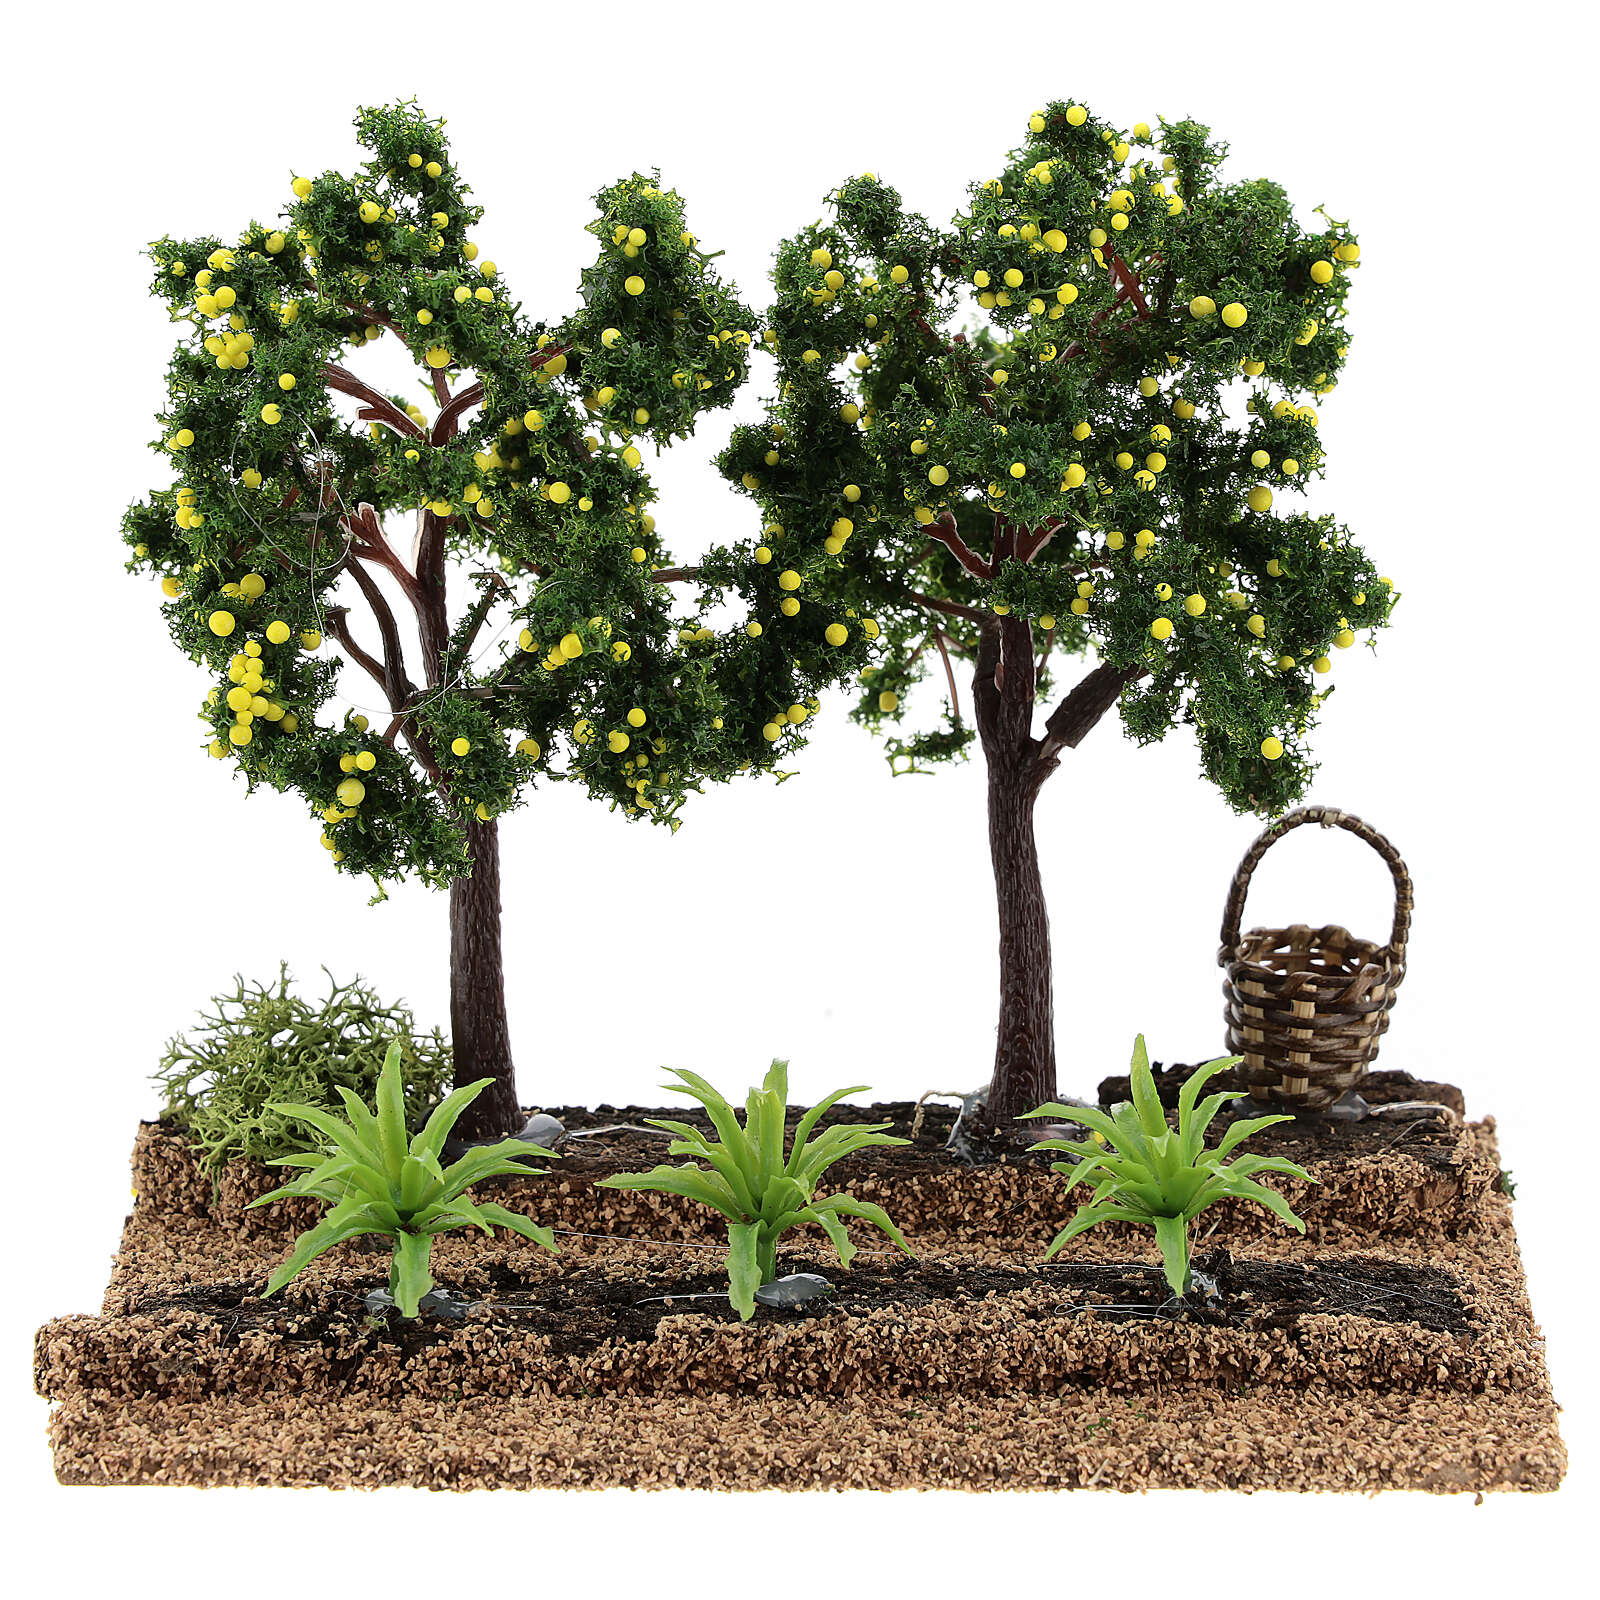 Lemon orchard figurine, 6-8 cm nativity 15x15x10 cm 4